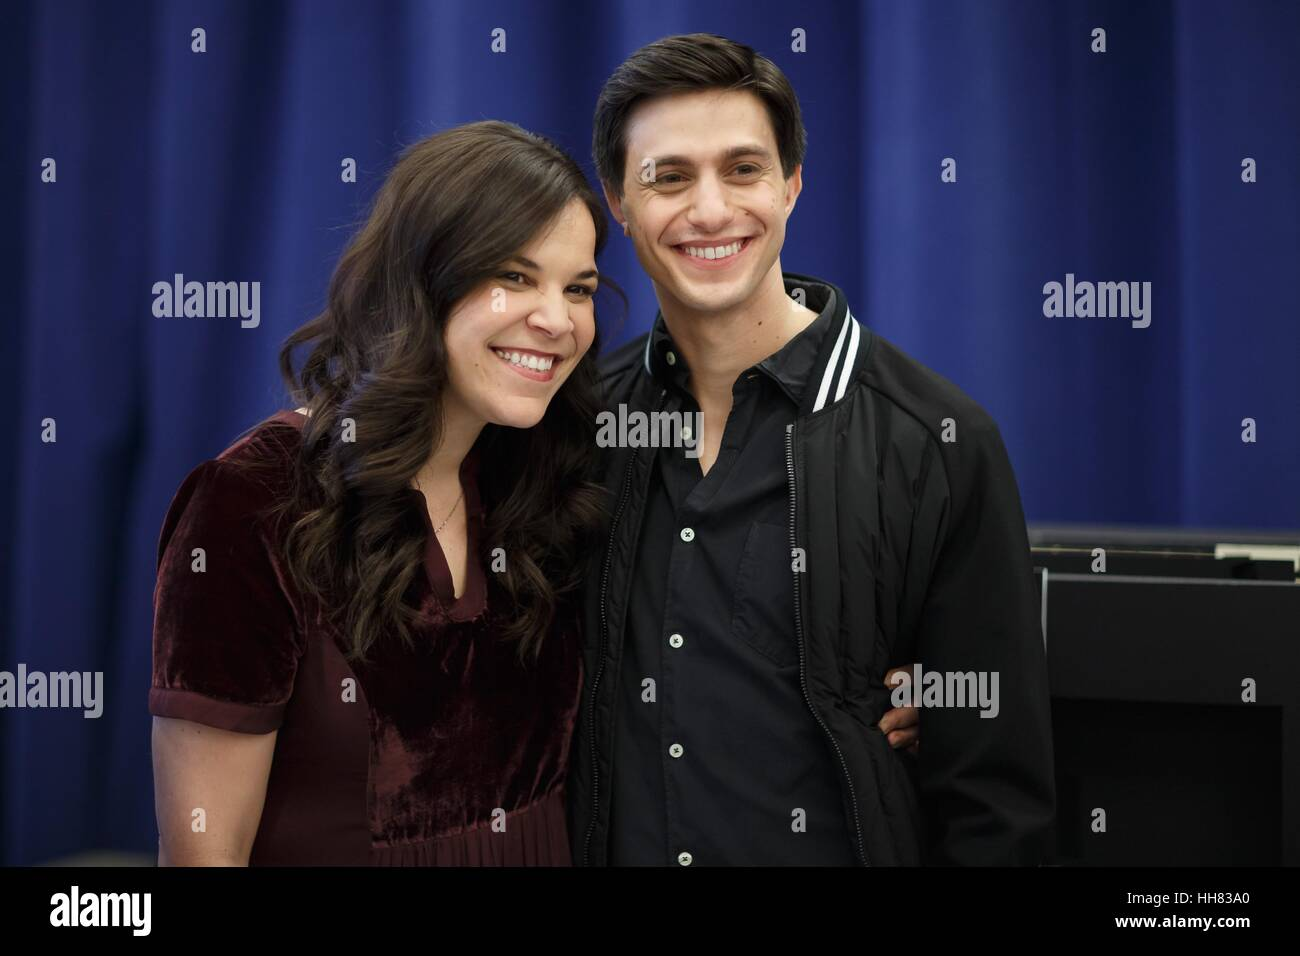 New York, USA. 17th Jan, 2017. Lindsay Mendez, Gideon Glick at the Photo Call for 'Significant Other' Press - Stock Image